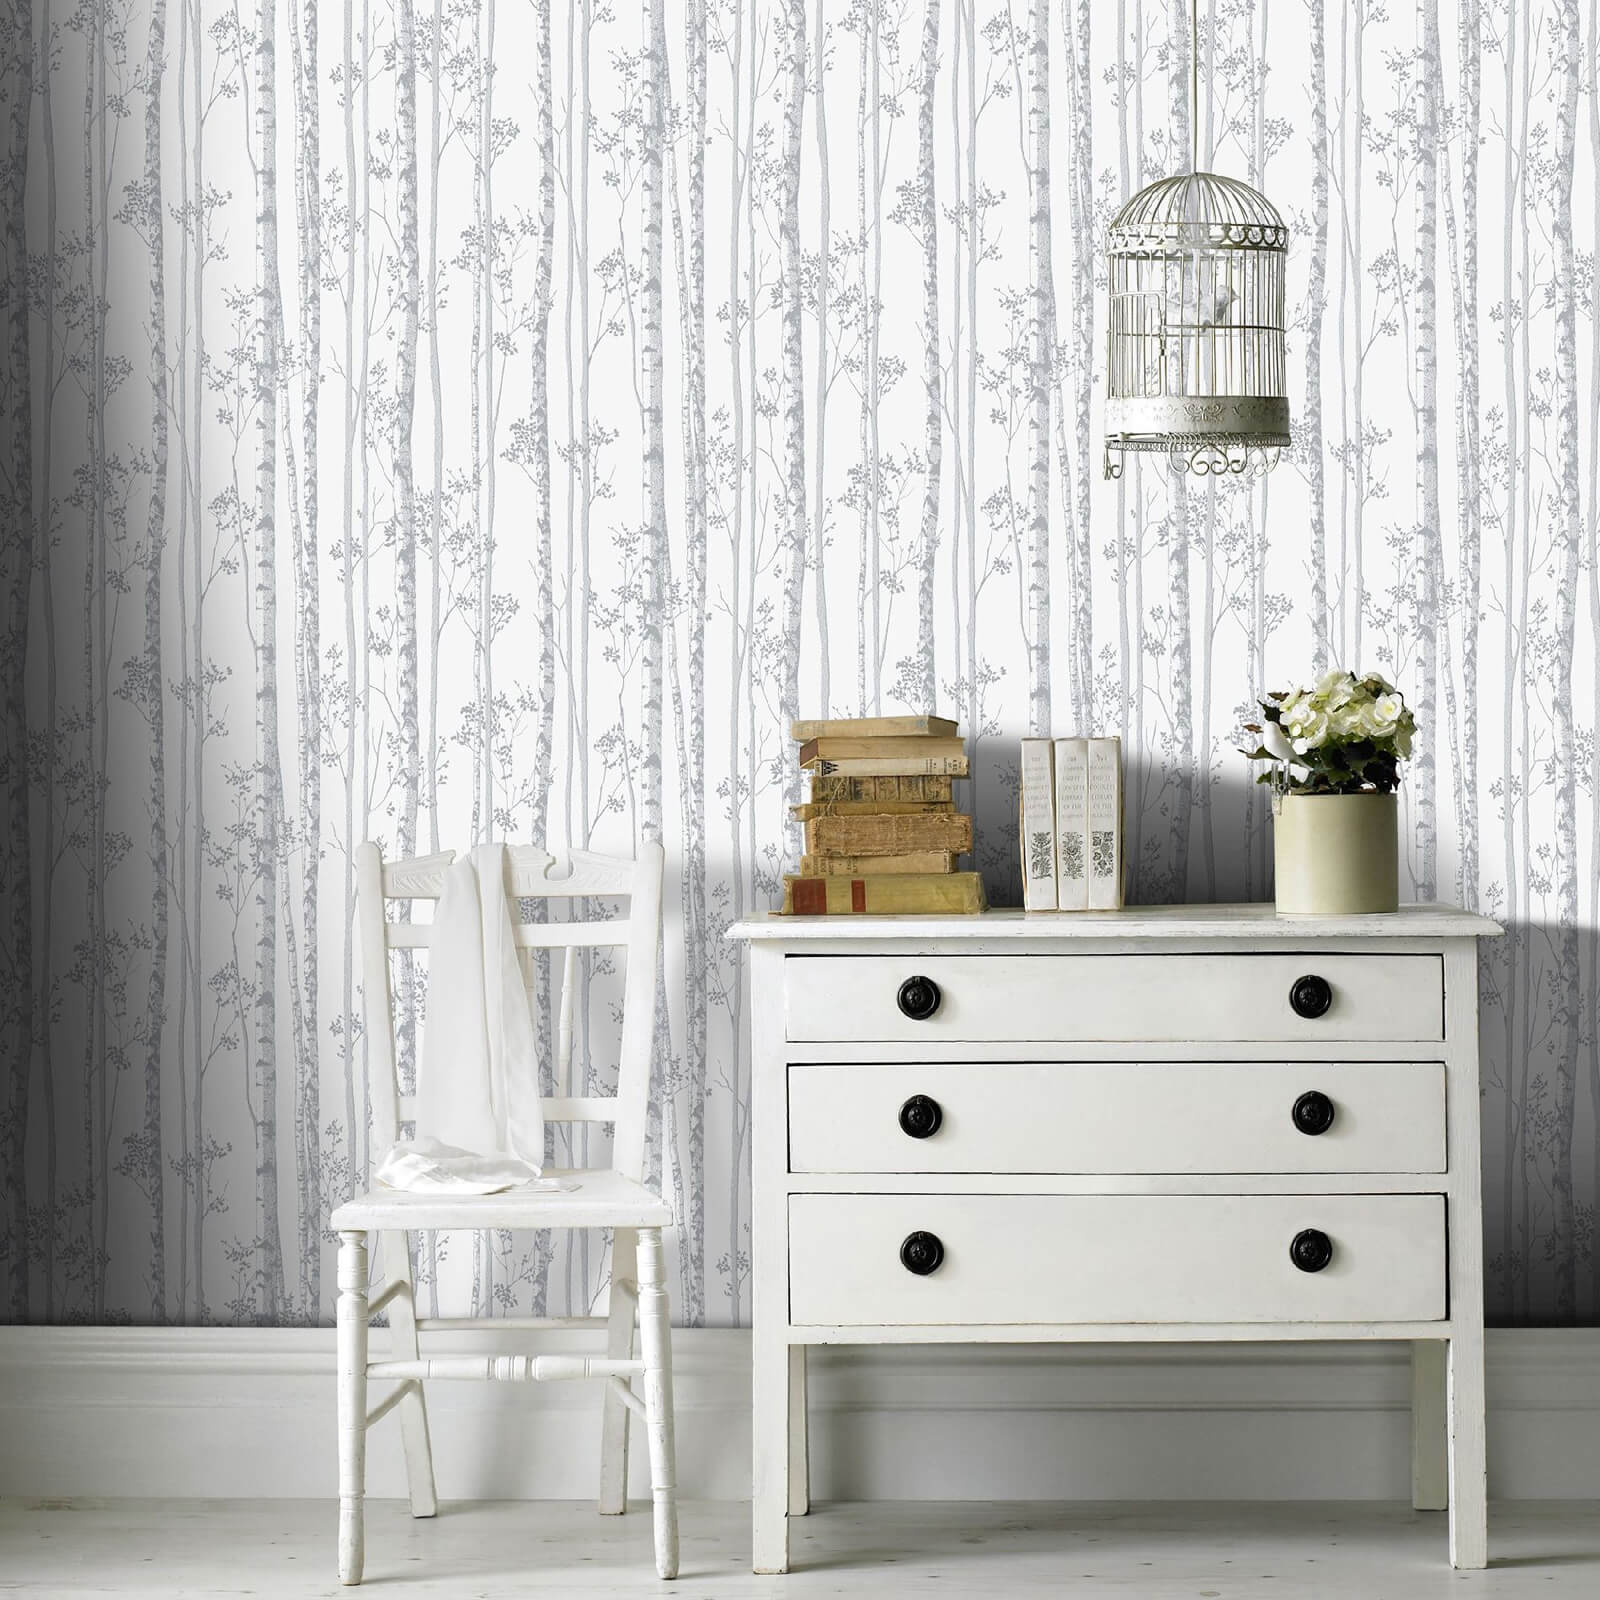 Boutique Linden Branch Shimmer Tree Print Pearl/Grey Wallpaper